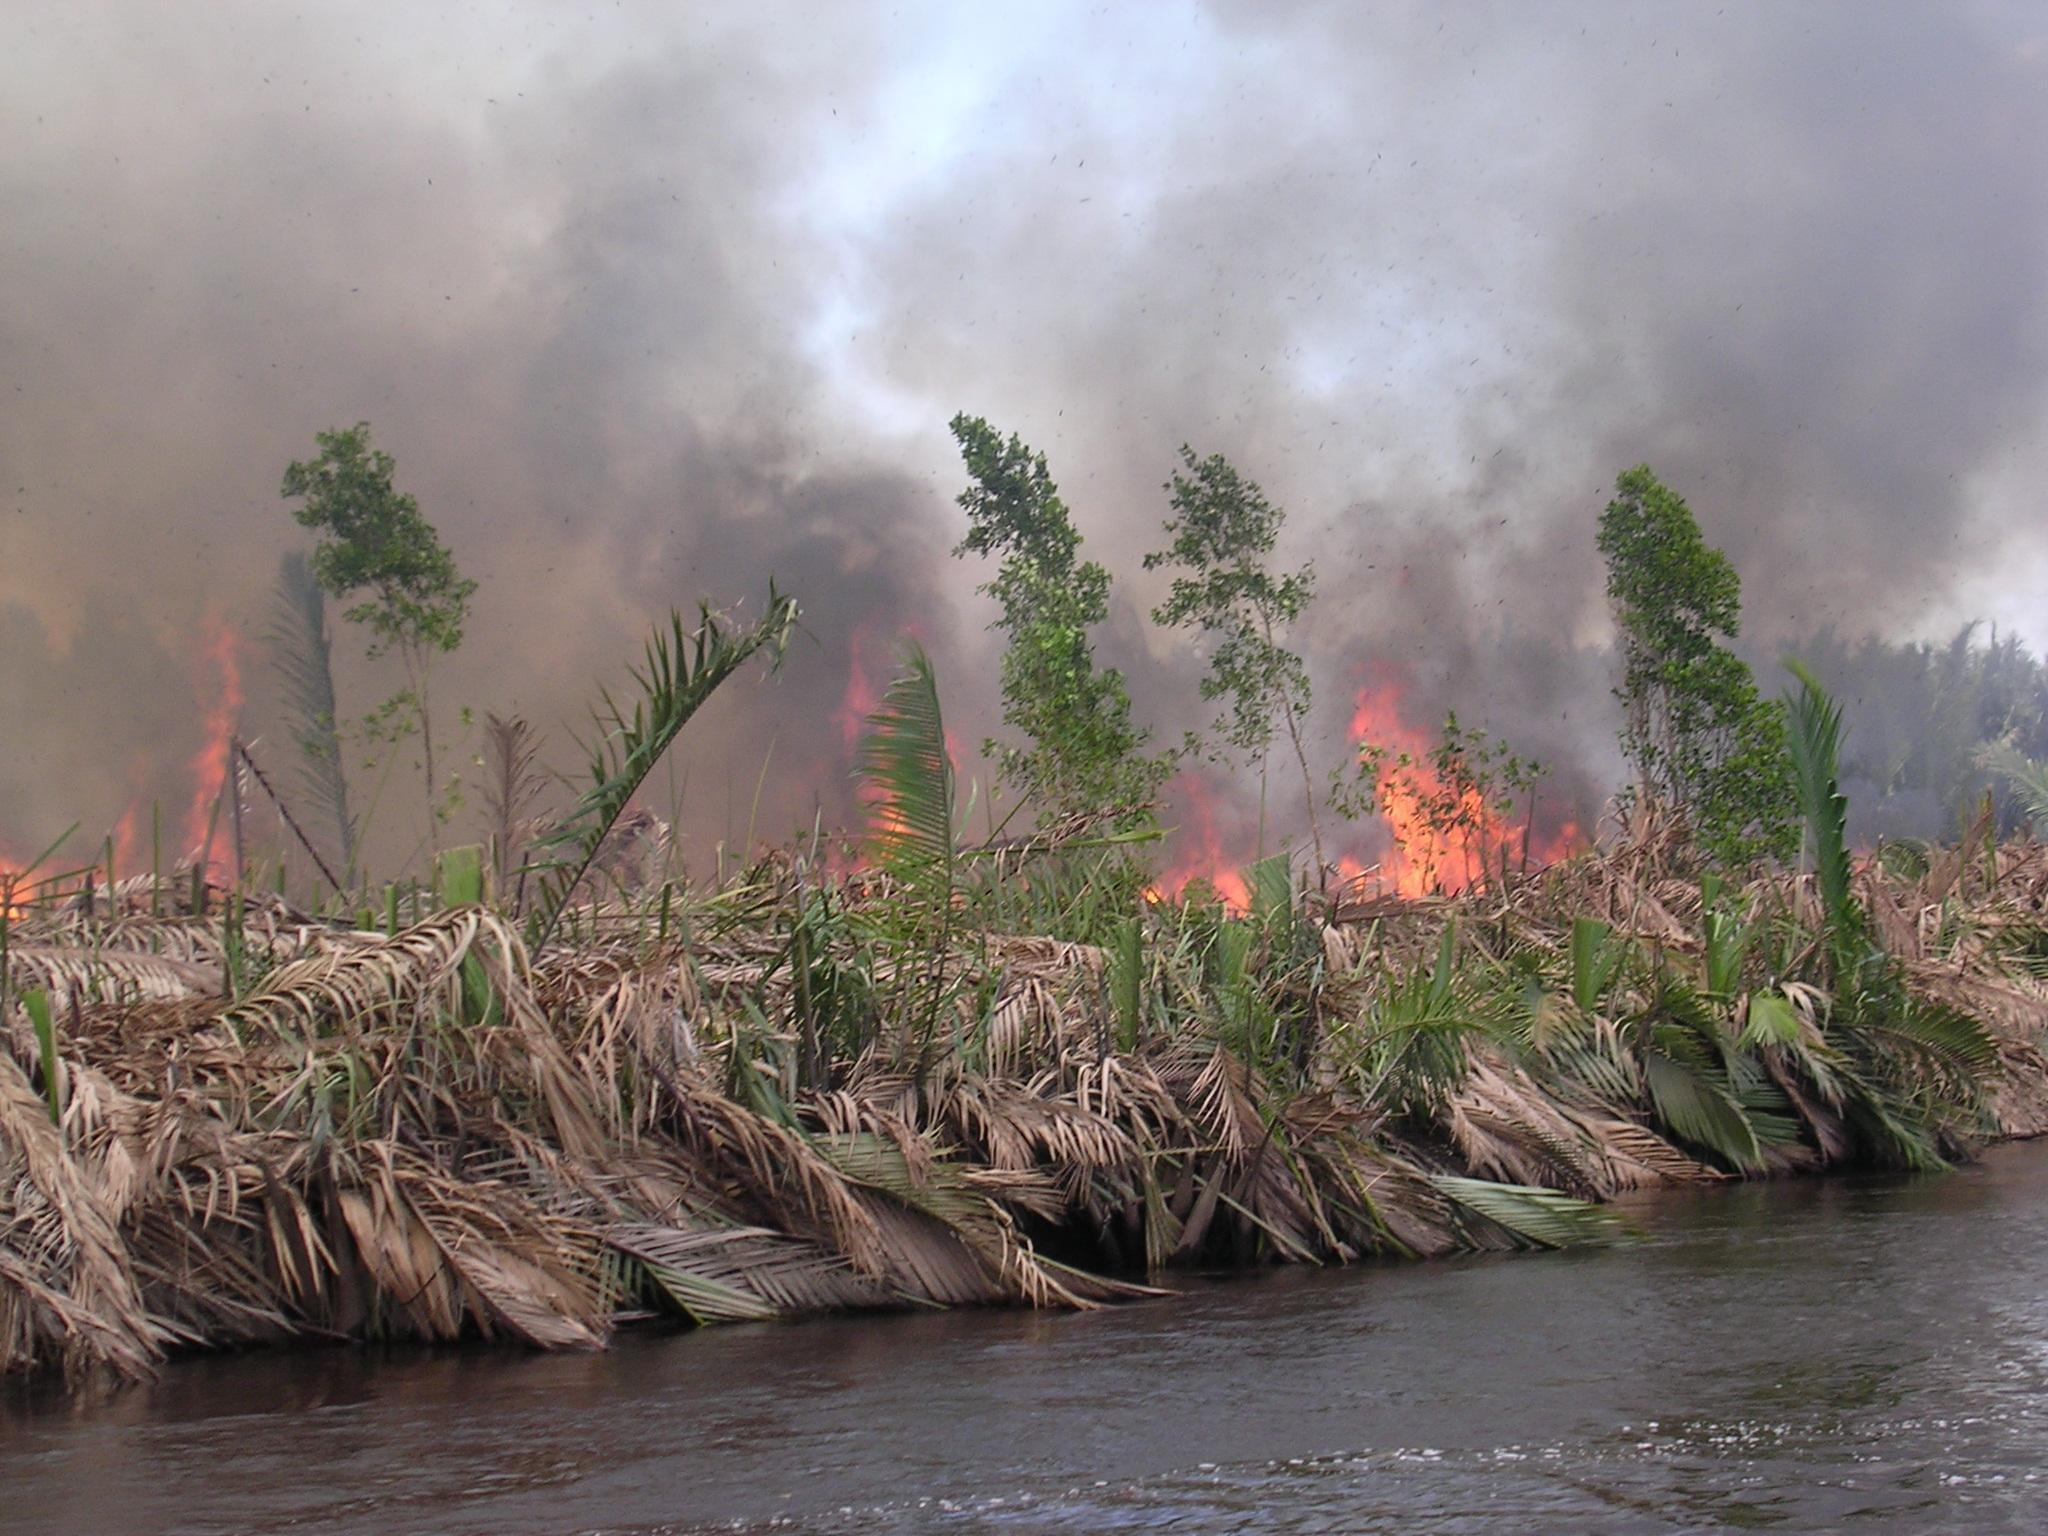 burning peatland in kalimantan, indonesia (pieter van eijk)